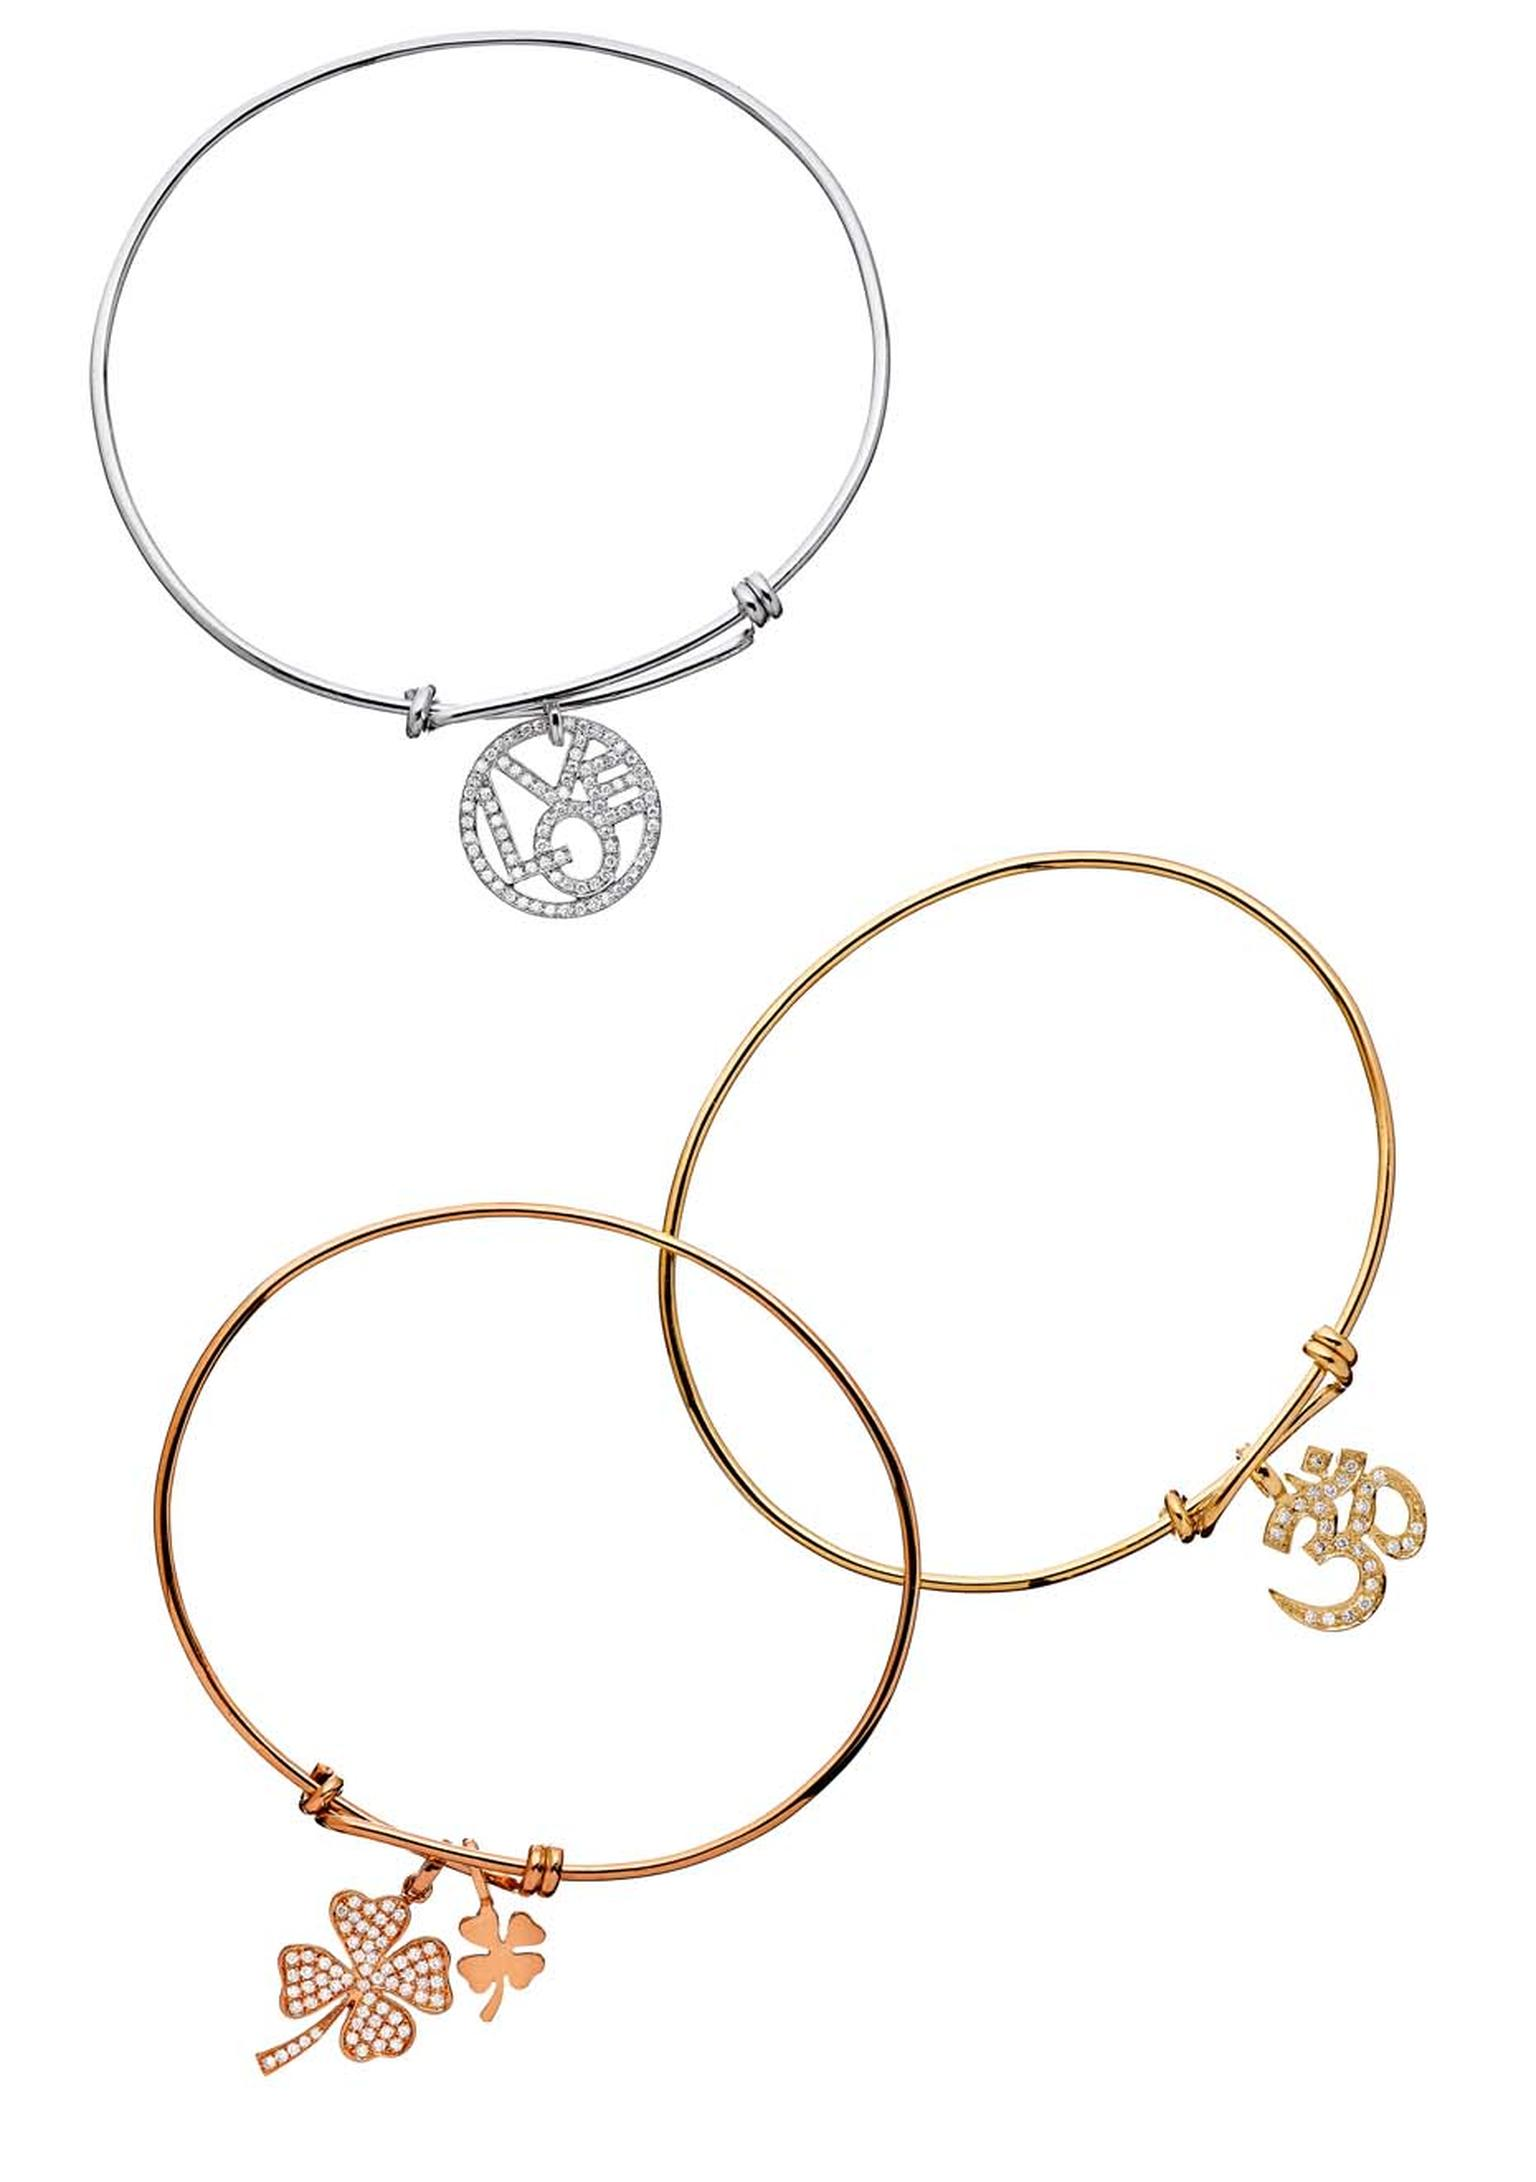 CADA's Love and Peace designs have been elevated to iconic status. The Love and Peace bracelets spell out a universal message in diamond pavé on white, yellow or rose gold.